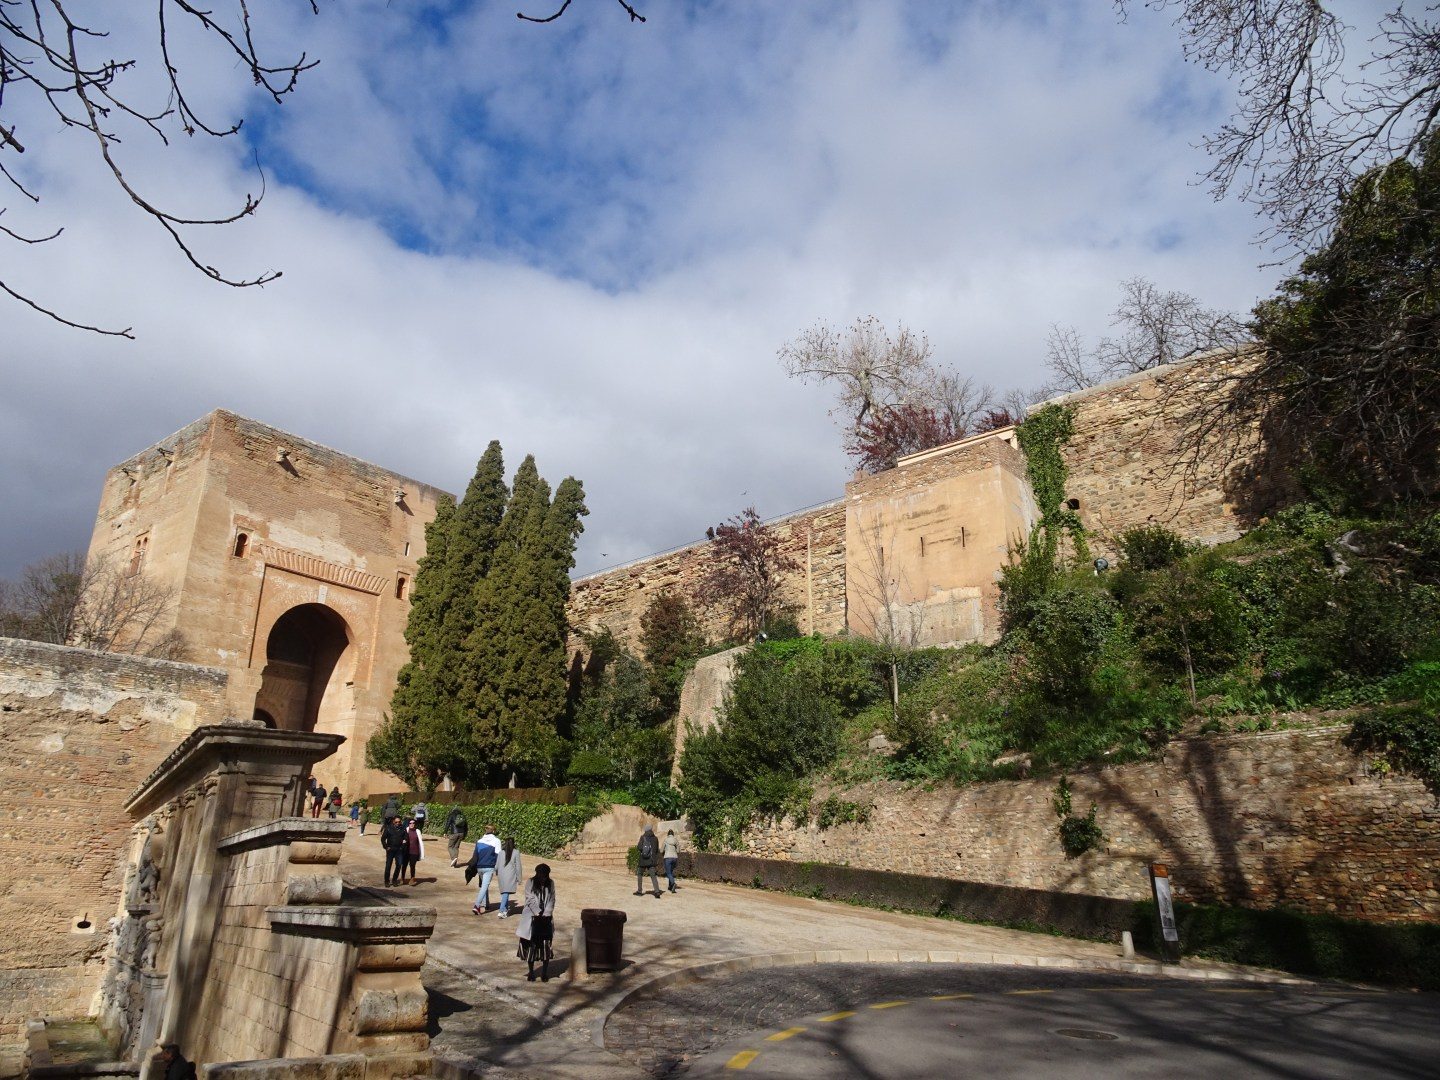 There are parts of the Alhambra you can access for free